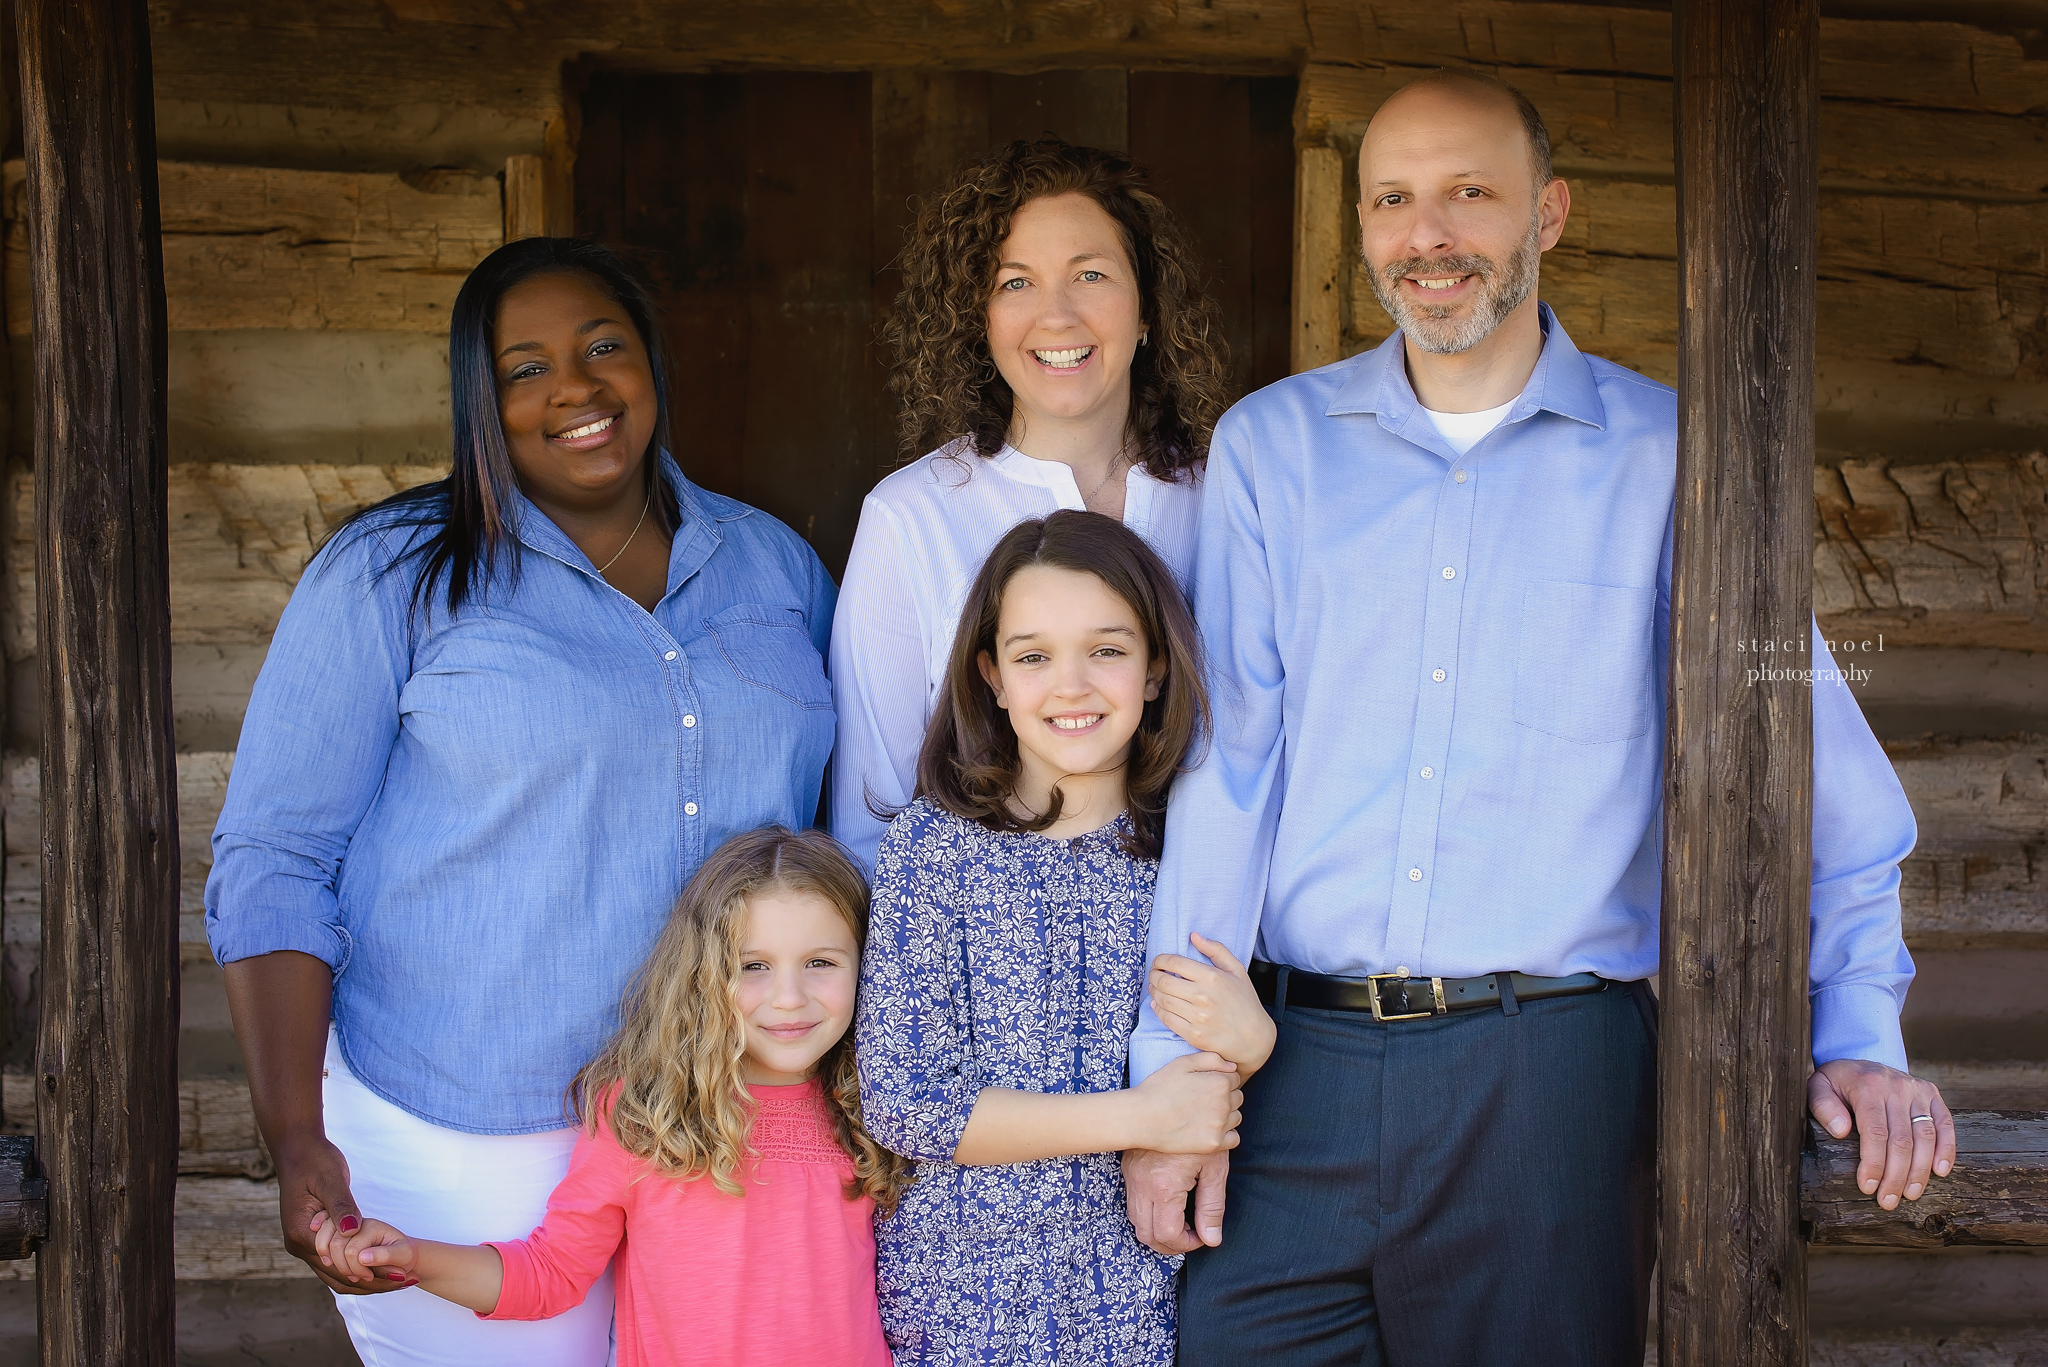 charlotte's best family photographer staci noel photographer takes image of extended family